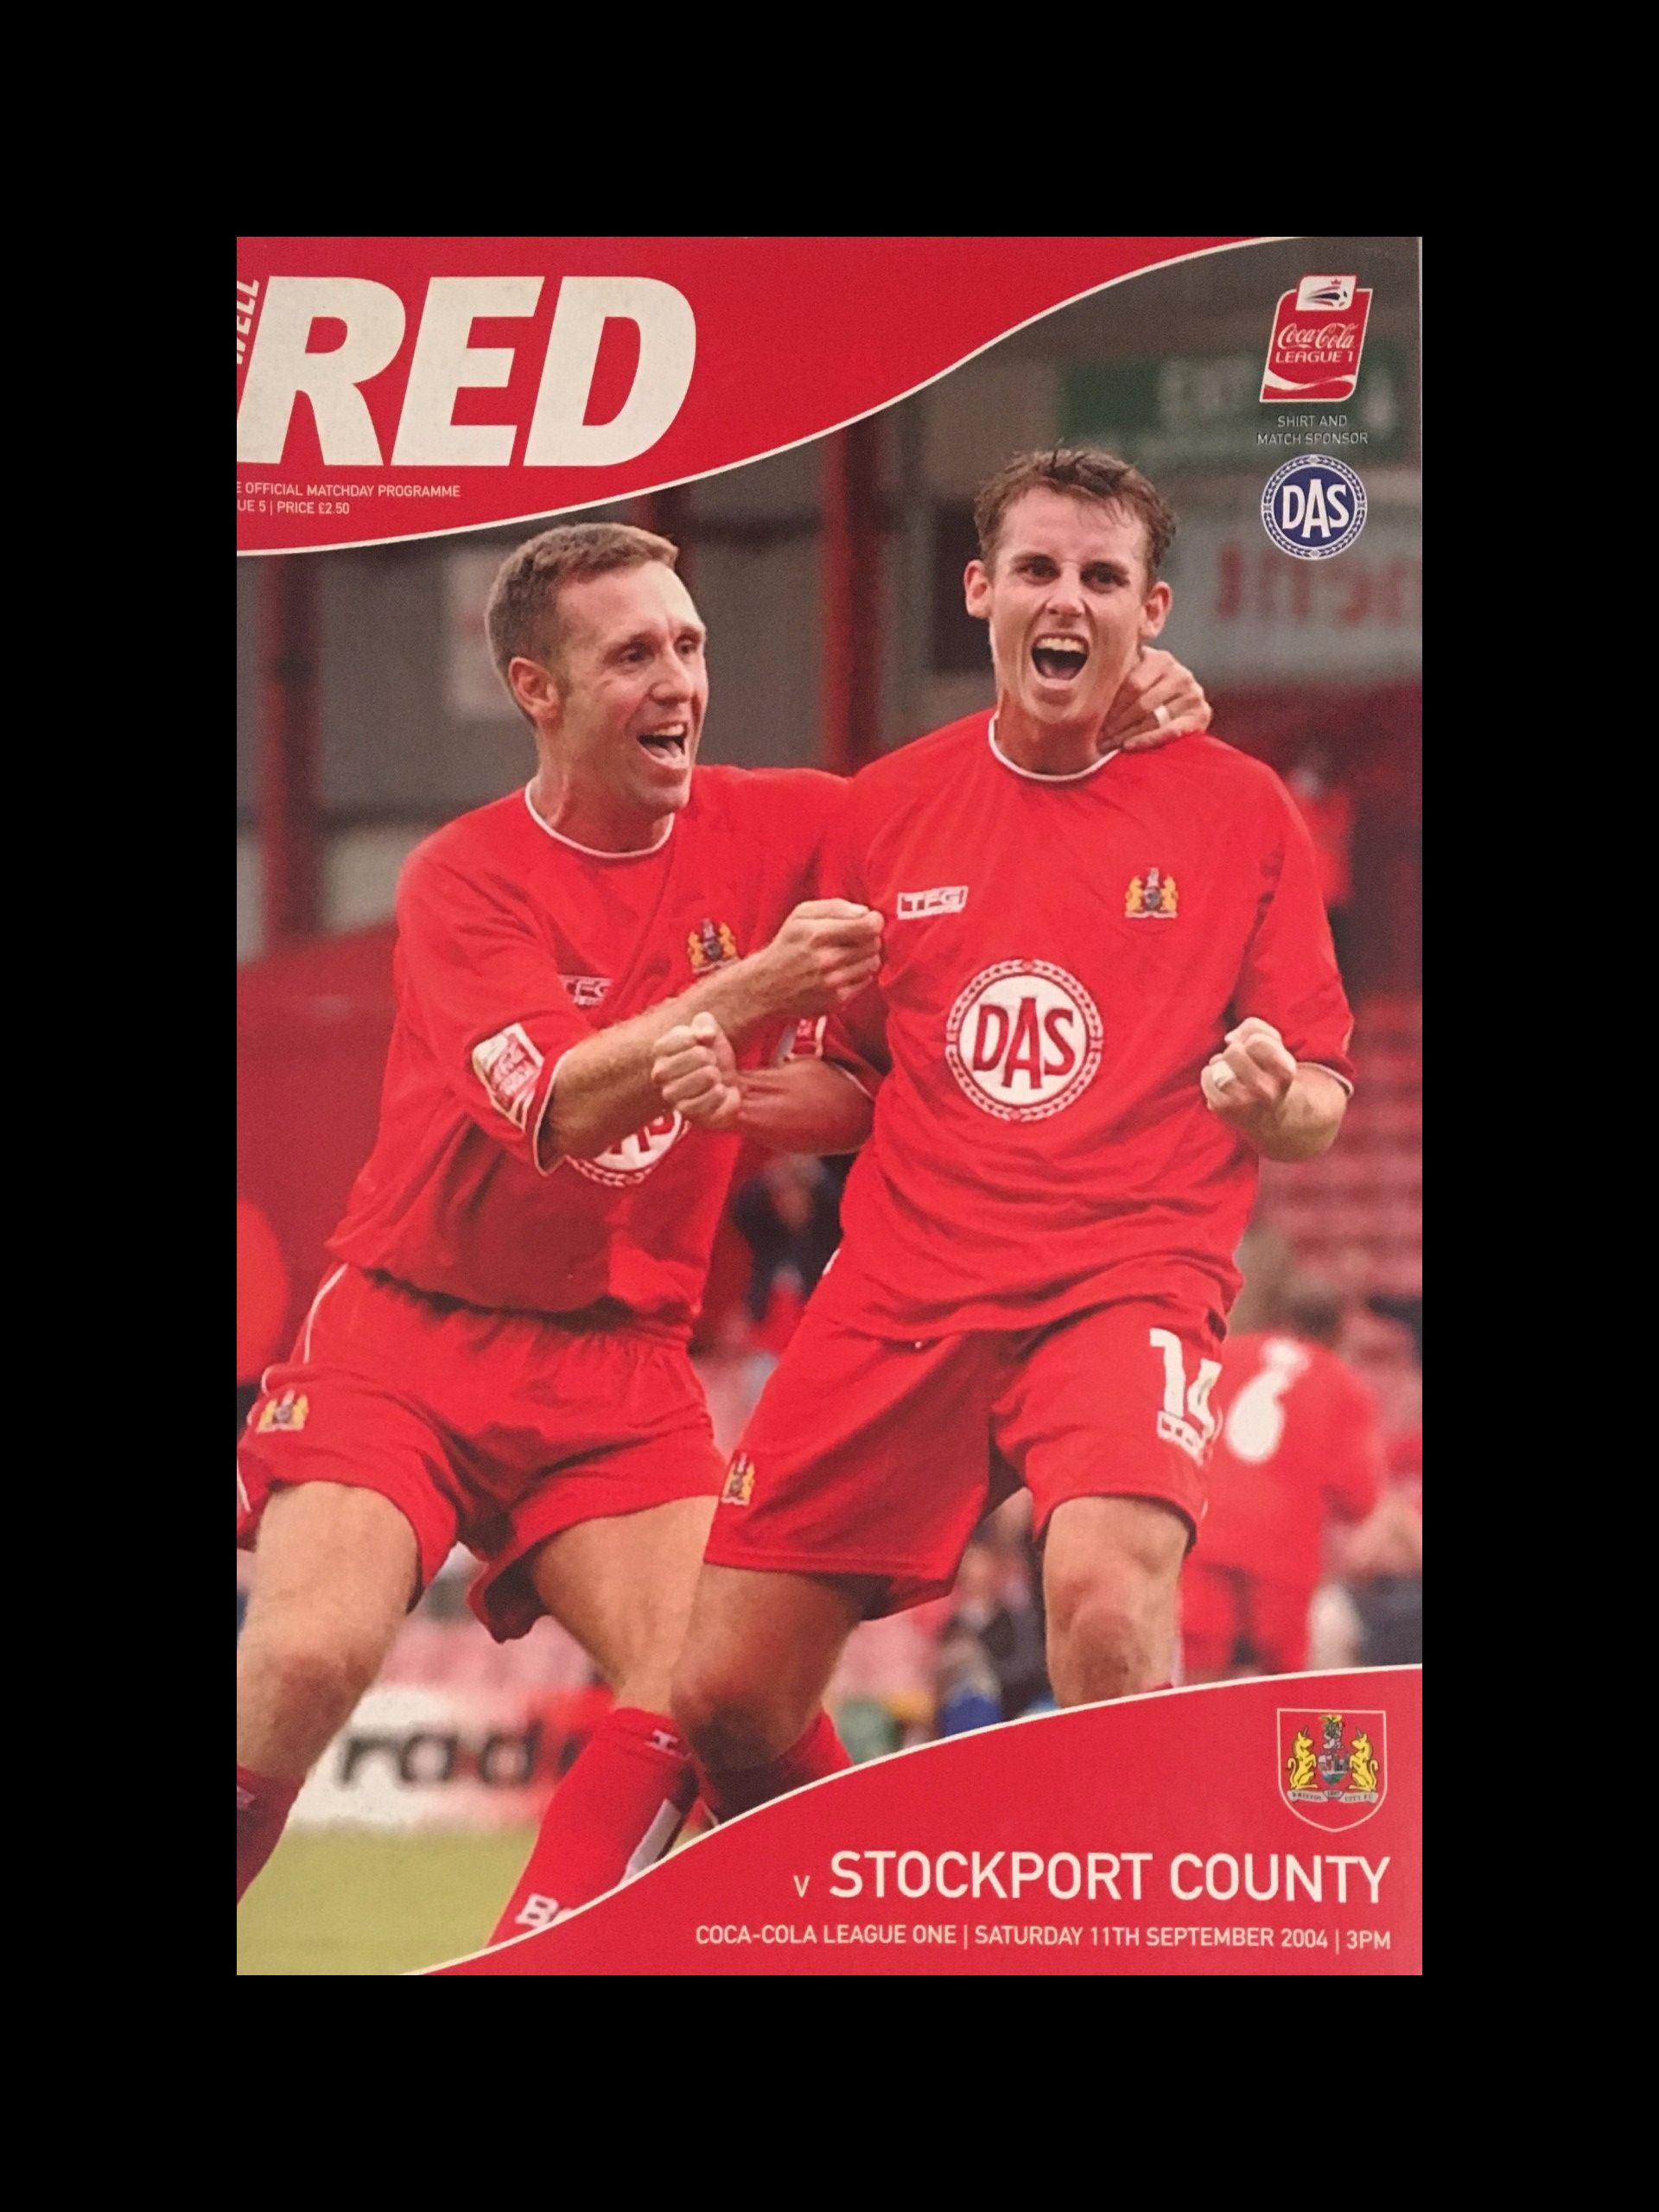 Bristol City v Stockport County 11-09-2004 Programme